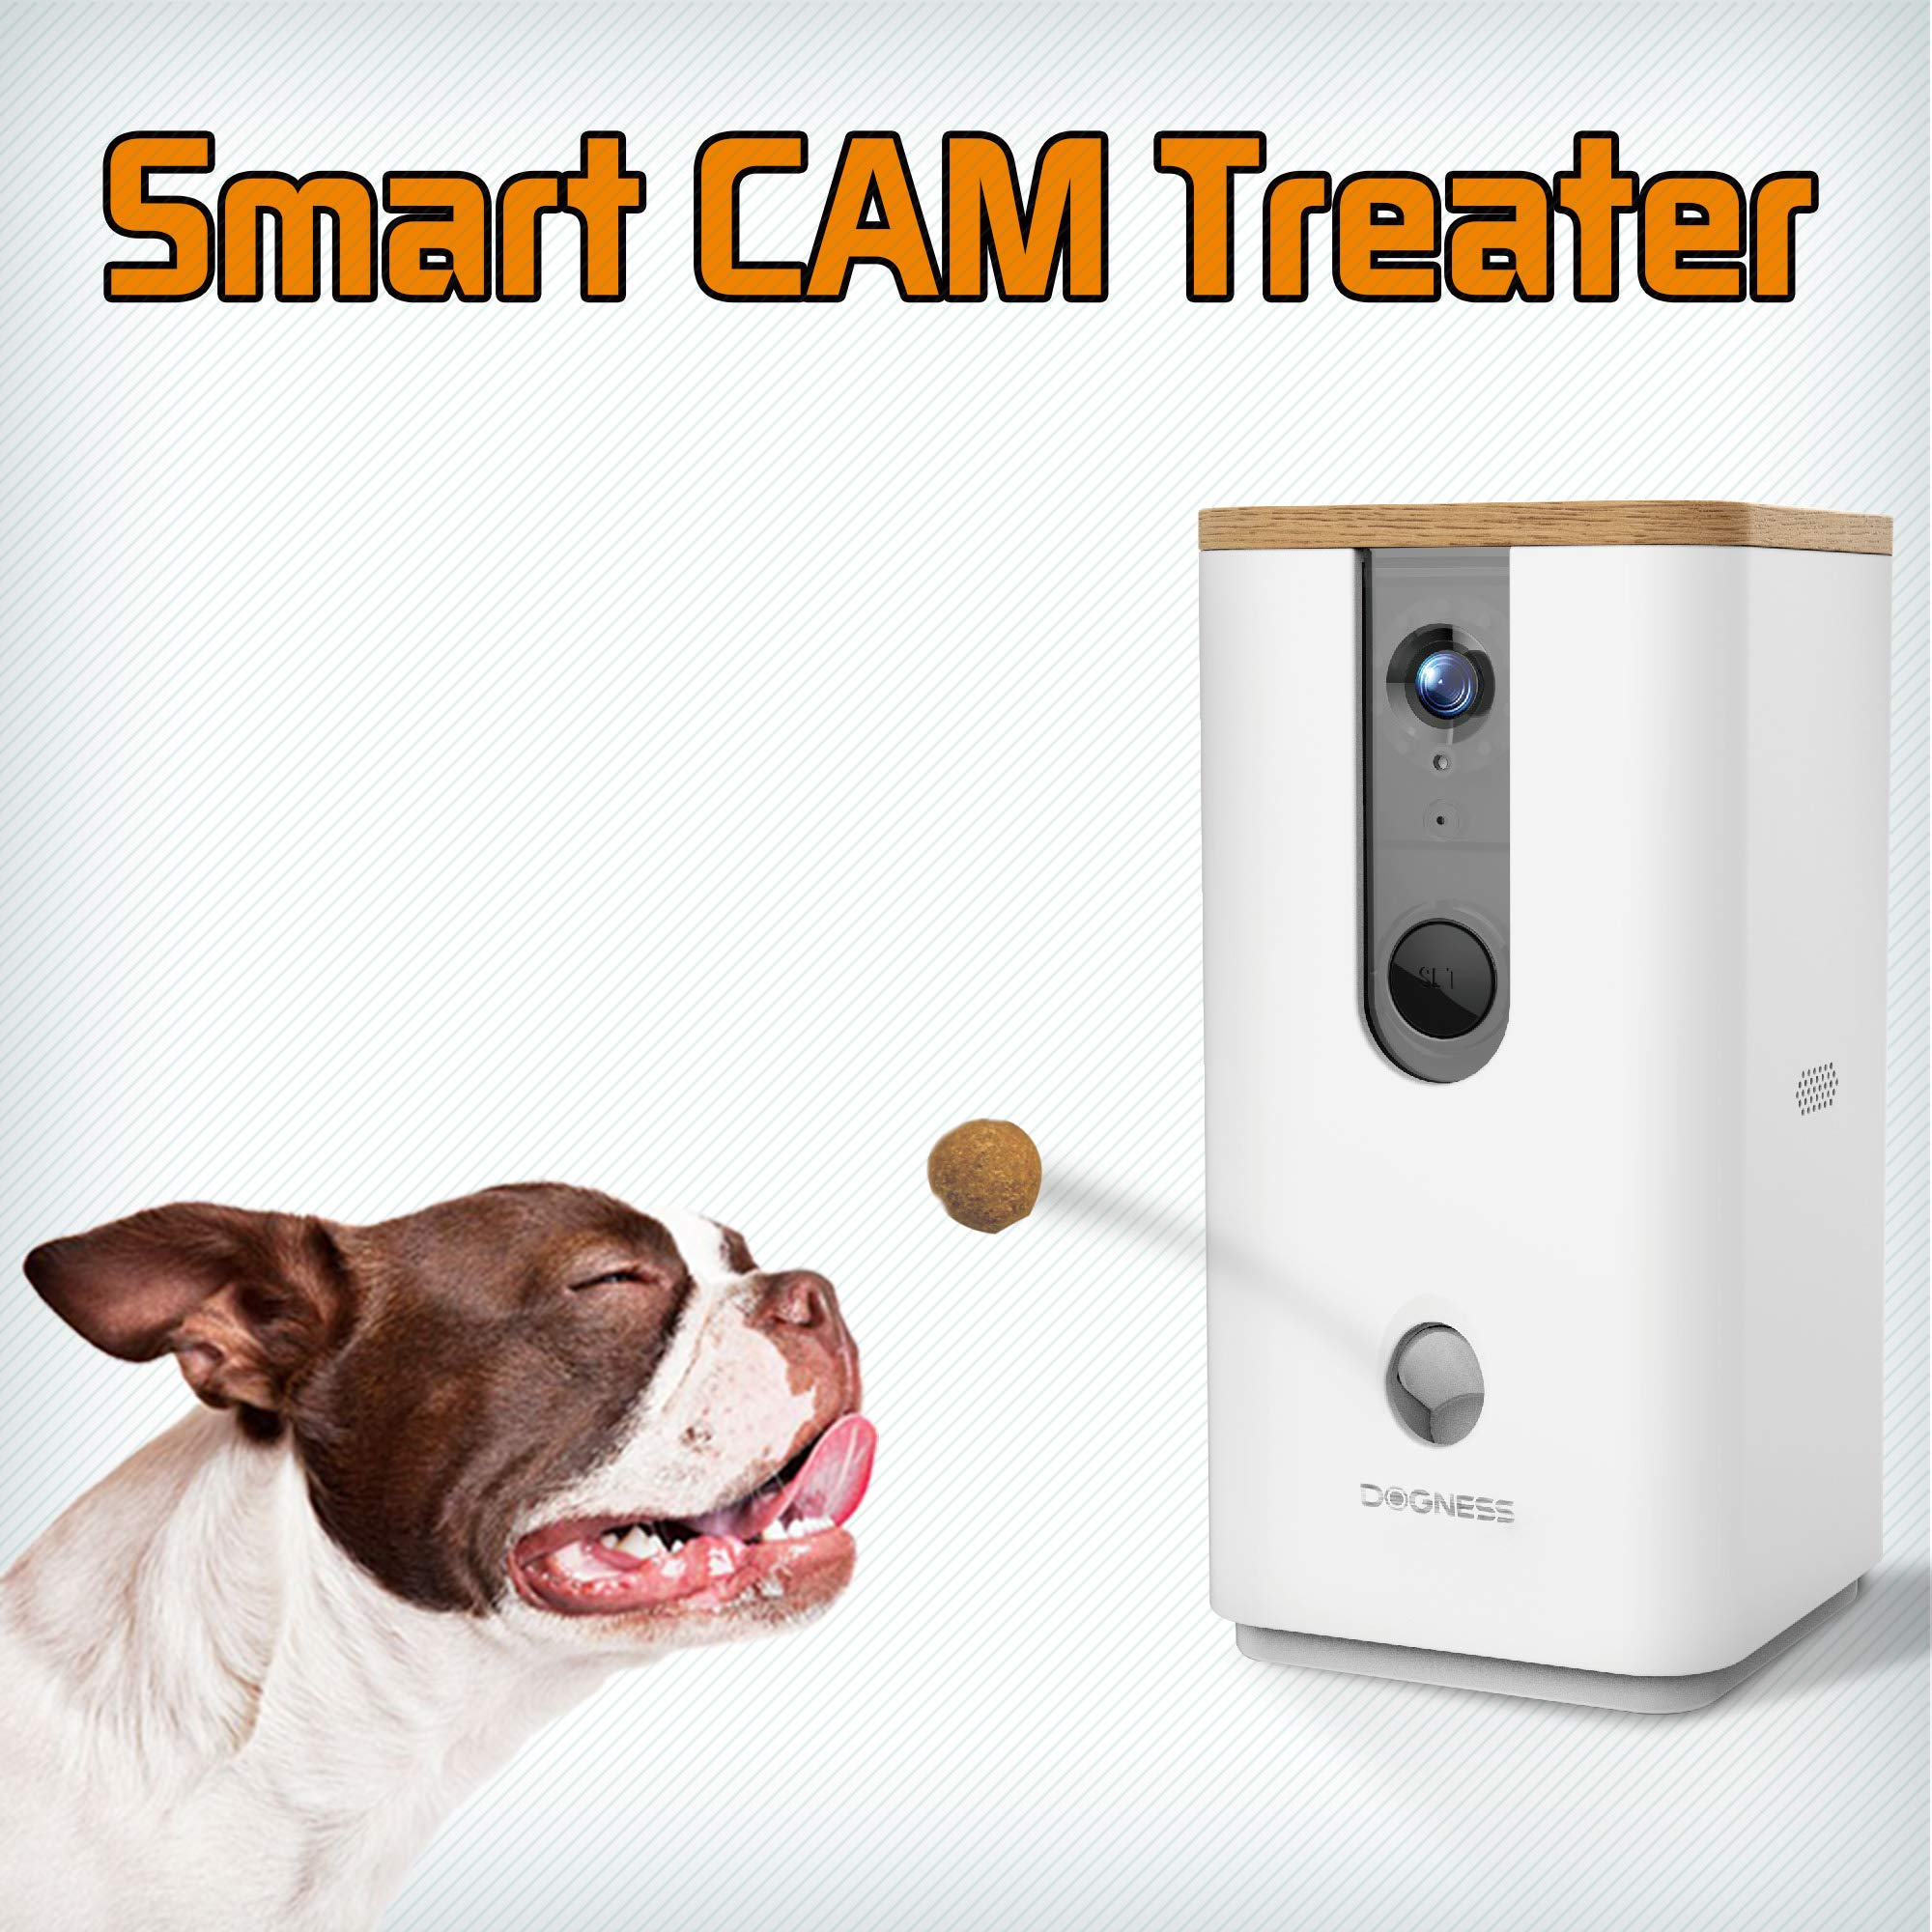 DOGNESS Pet Treat Dispenser with Camera, Monitor Your Pet Remotely with HD Video, Two-Way Audio, Night Vision, for Dogs and Cats - White by DOGNESS